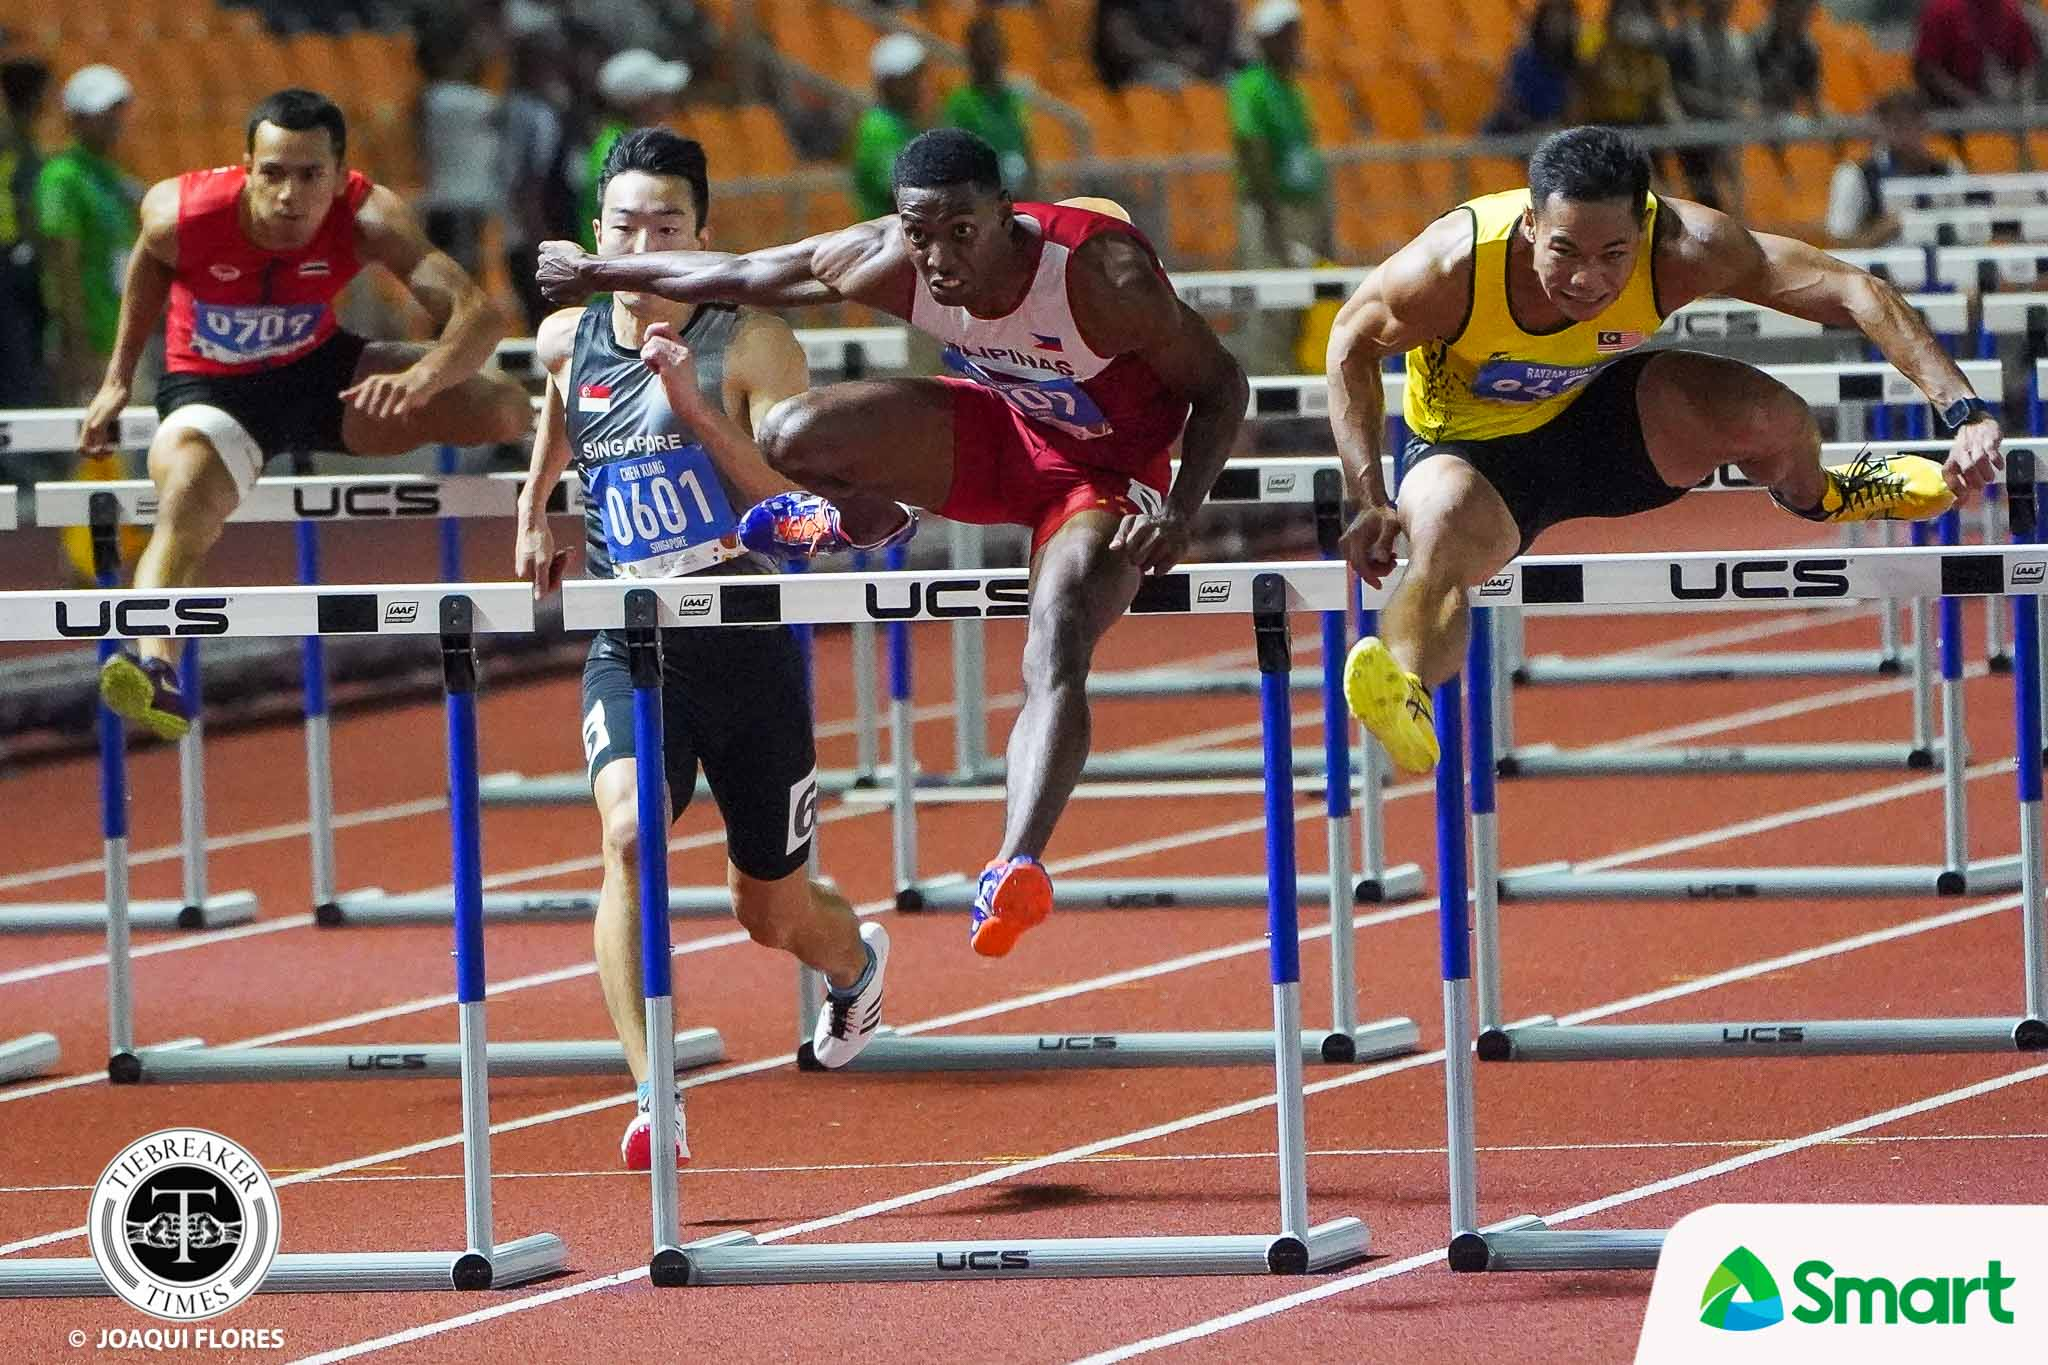 Tiebreaker Times Photo-Finish: Clinton Bautista outlasts reigning champ to win SEAG hurdles gold 2019 SEA Games News Track & Field  Clinton Kingsley Bautista 2019 SEA Games - Athletics 2019 SEA Games